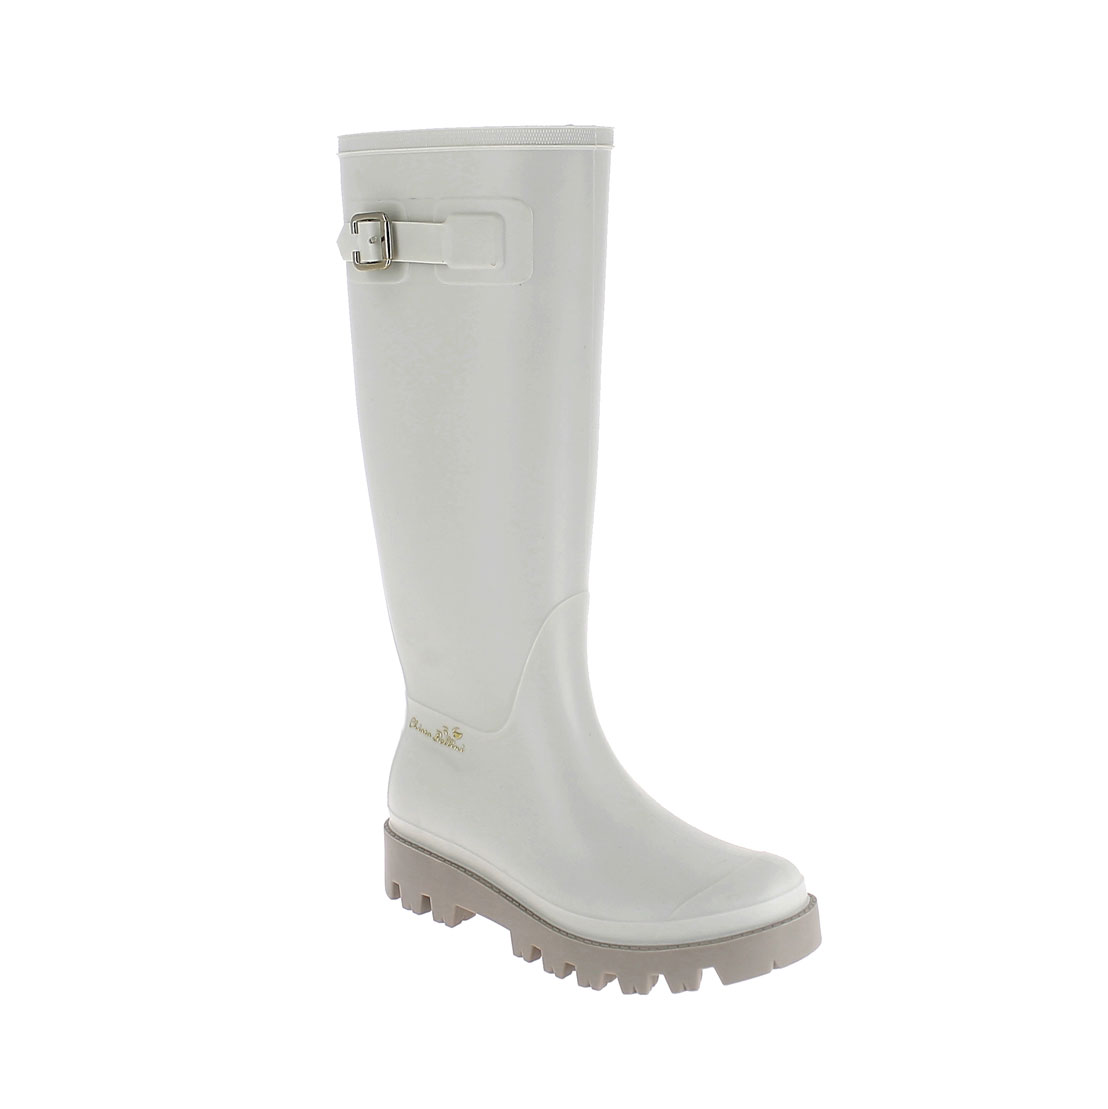 Wellington boot Trench con fibbia in metallo e logo in 3D